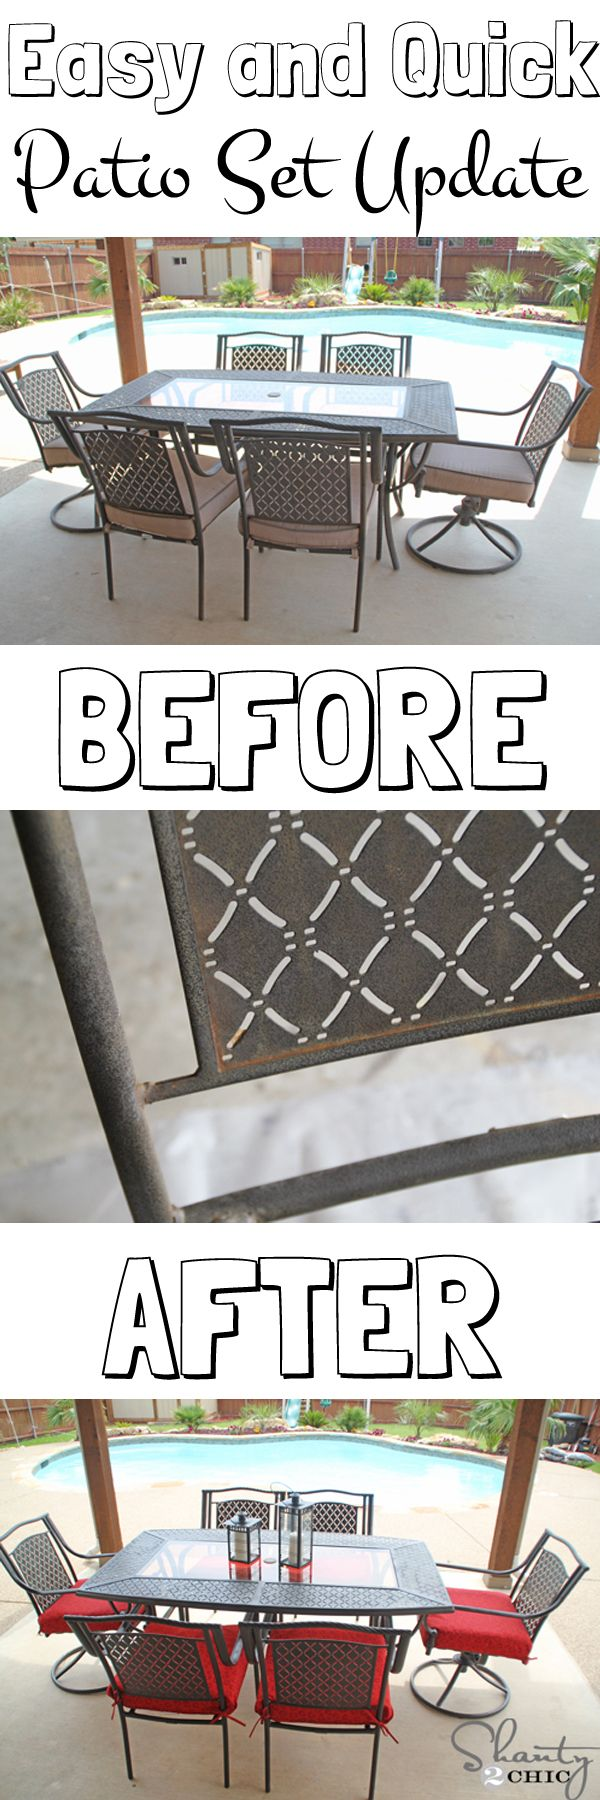 Don't get rid of your rusty patio set! This is a quick and easy tutorial that will make it look brand new!!!!